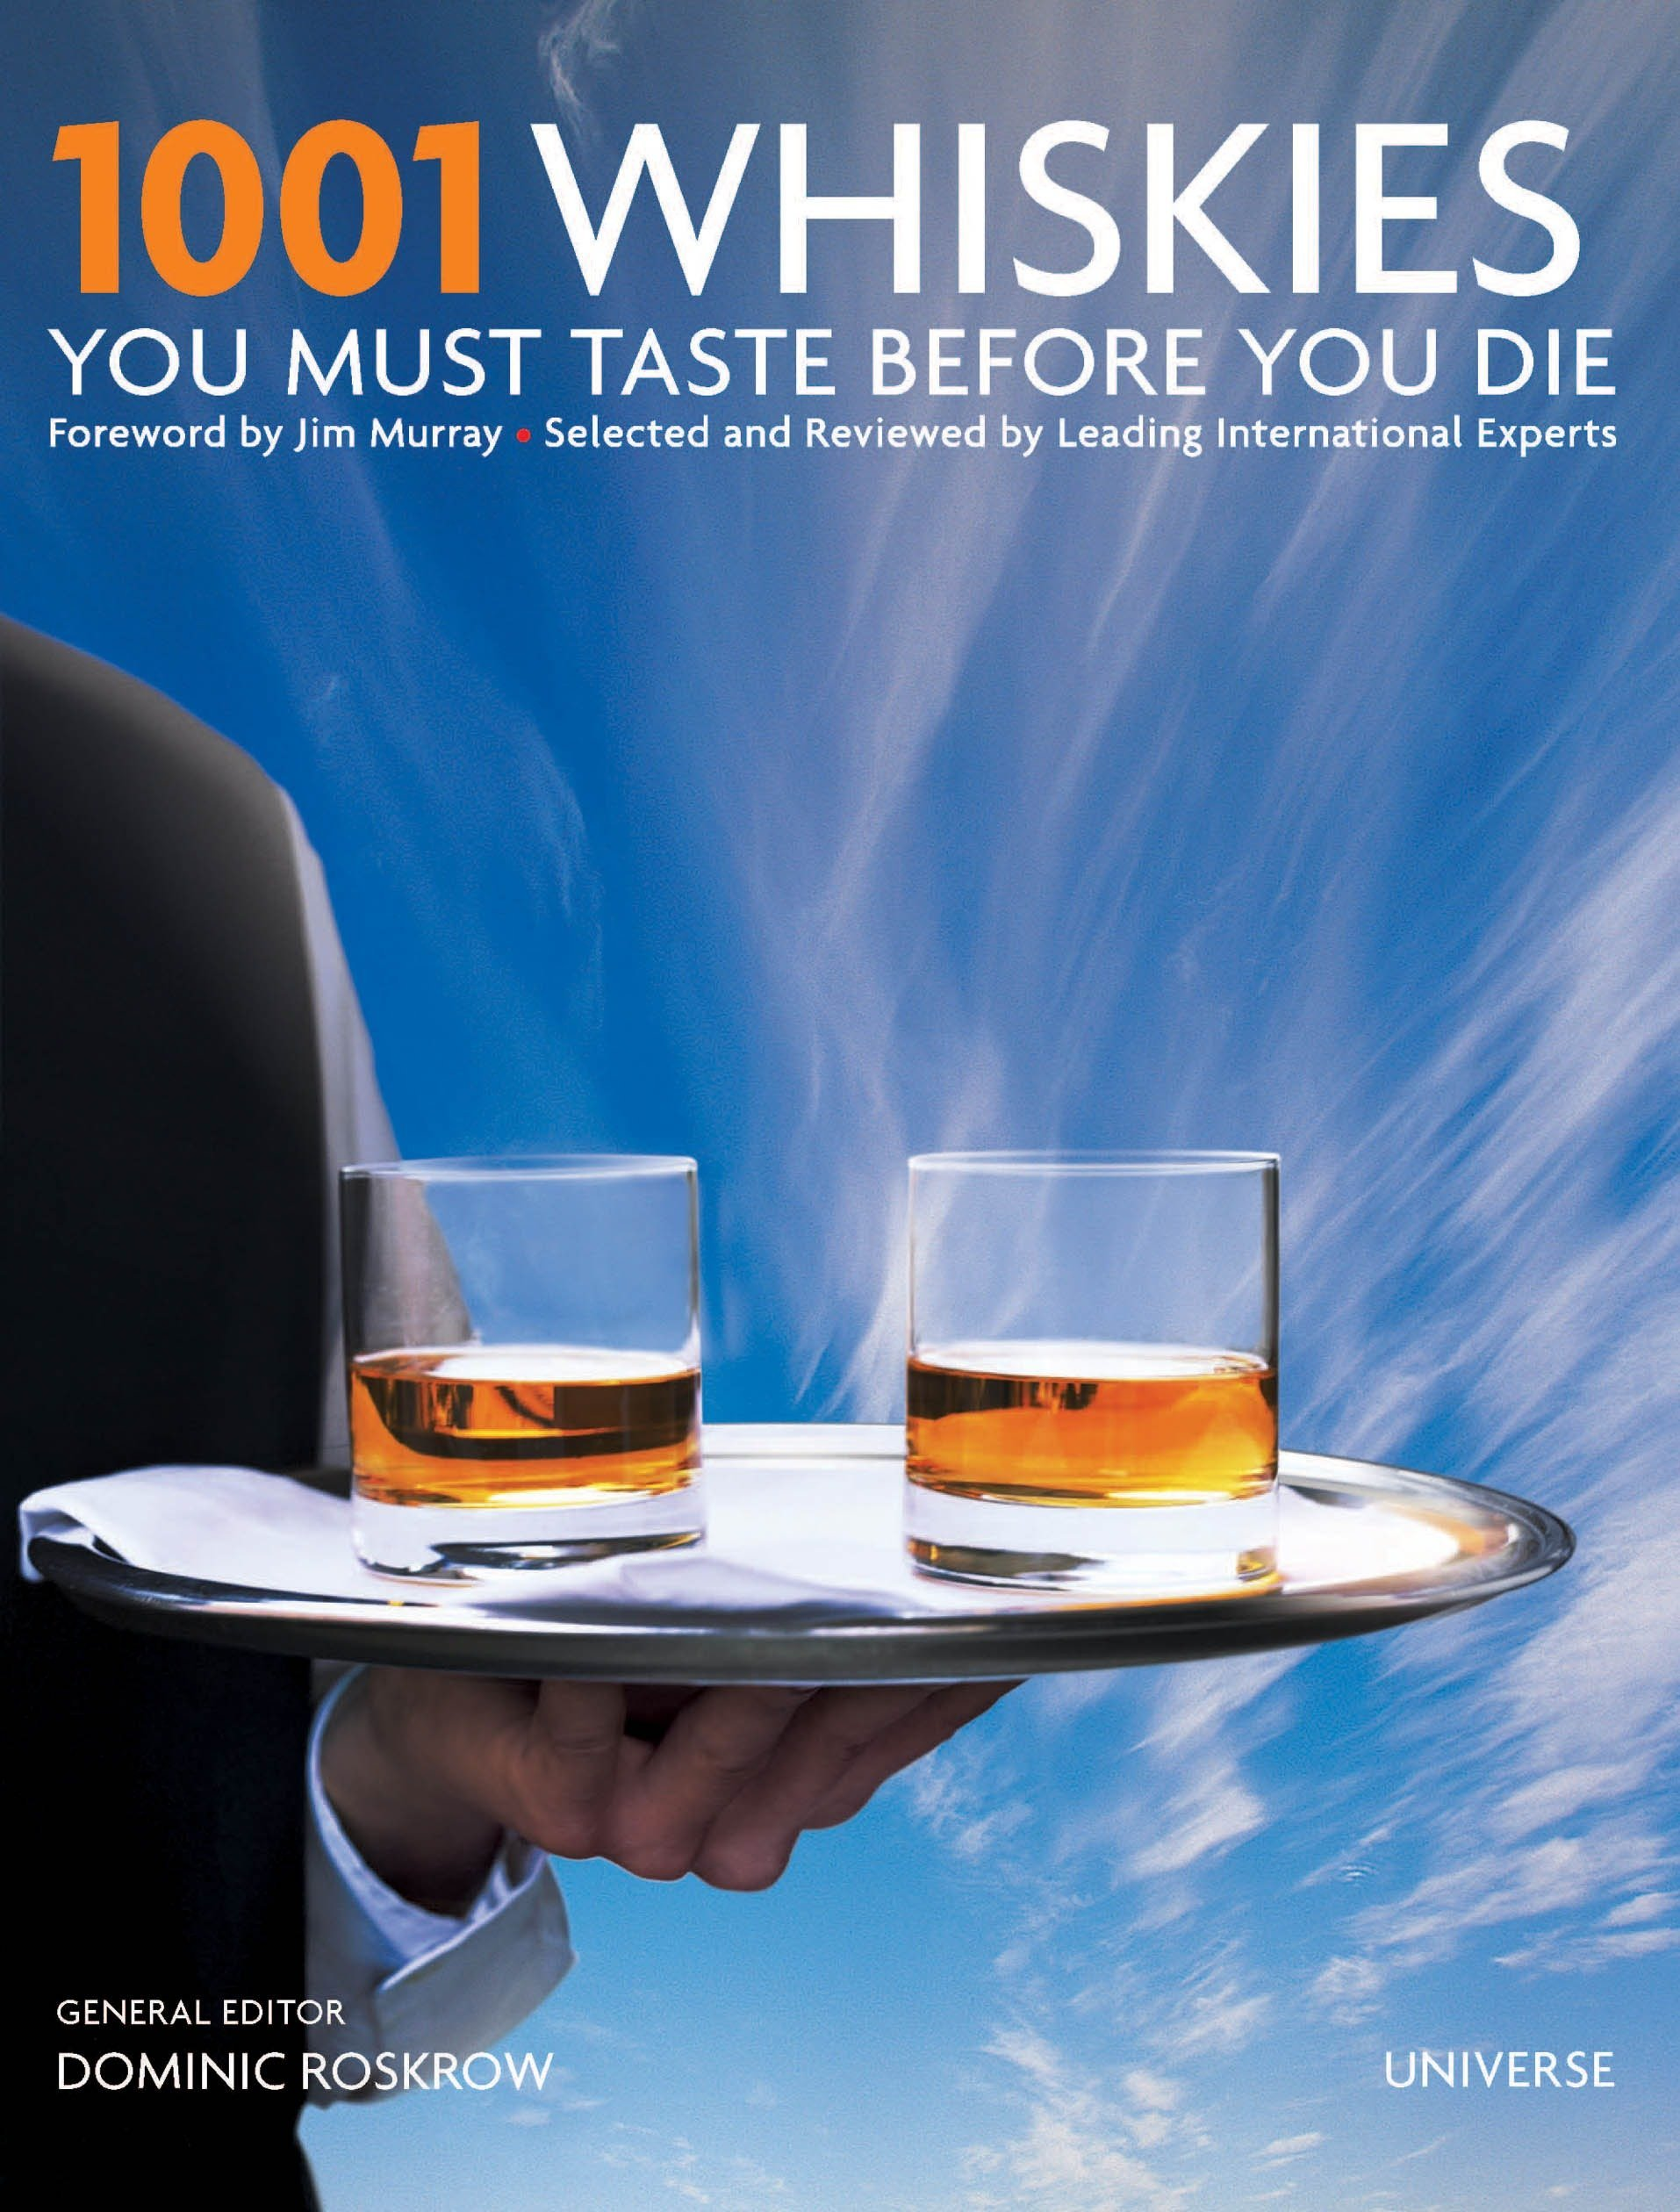 1001 Whiskies You Must Taste Before You Die (1001 (Universe)): Dominic  Roskrow: 9780789324870: Amazon.com: Books